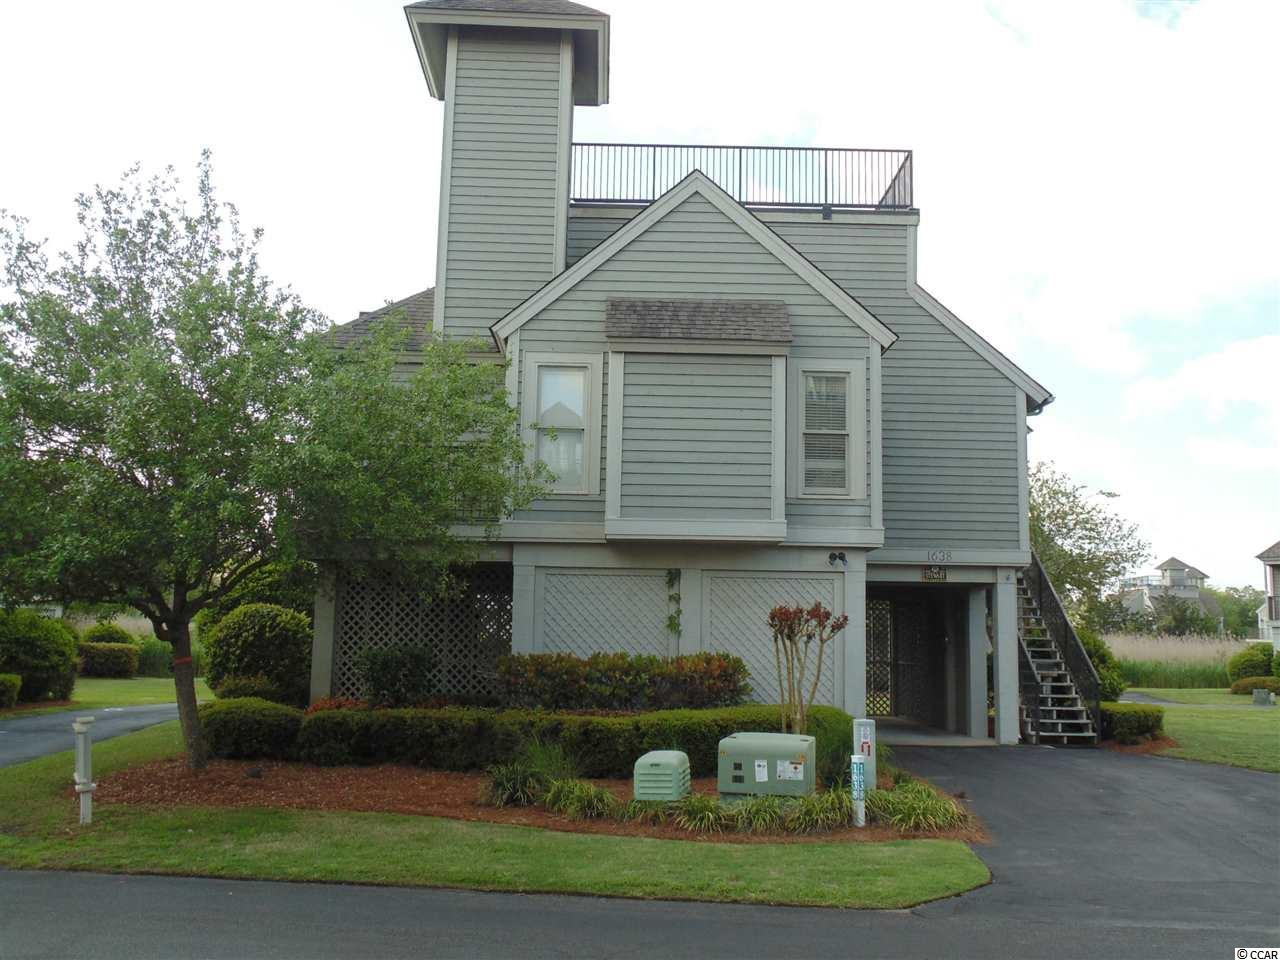 1638 Harbor Dr, North Myrtle Beach, SC